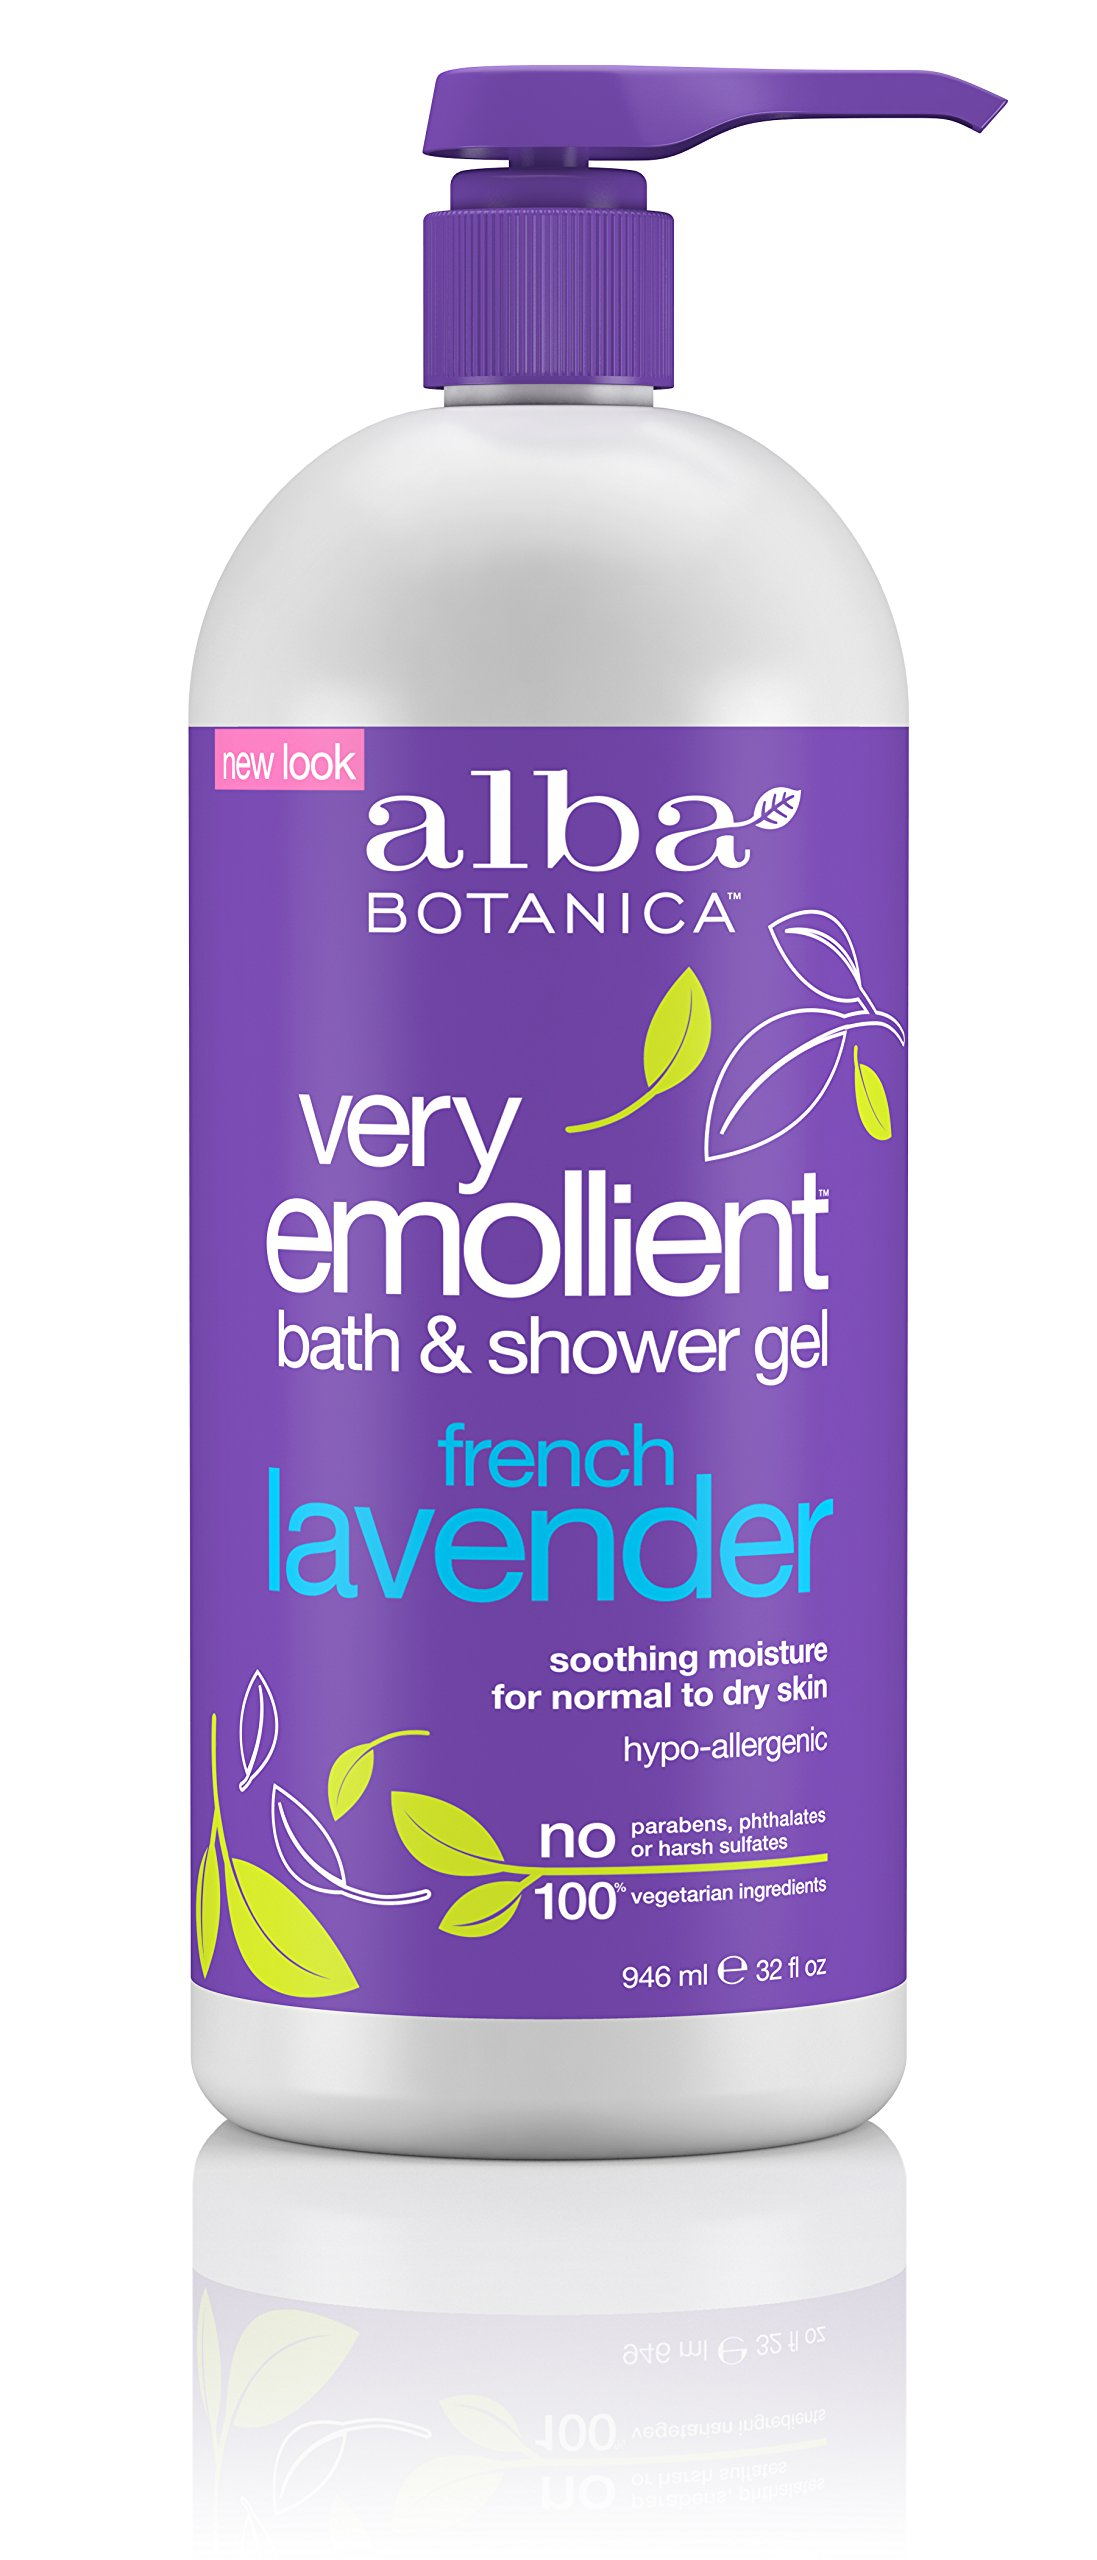 Alba Botanica Very Emollient, French Lavender Bath & Shower Gel, 32 Ounce by Alba Botanica (Image #1)